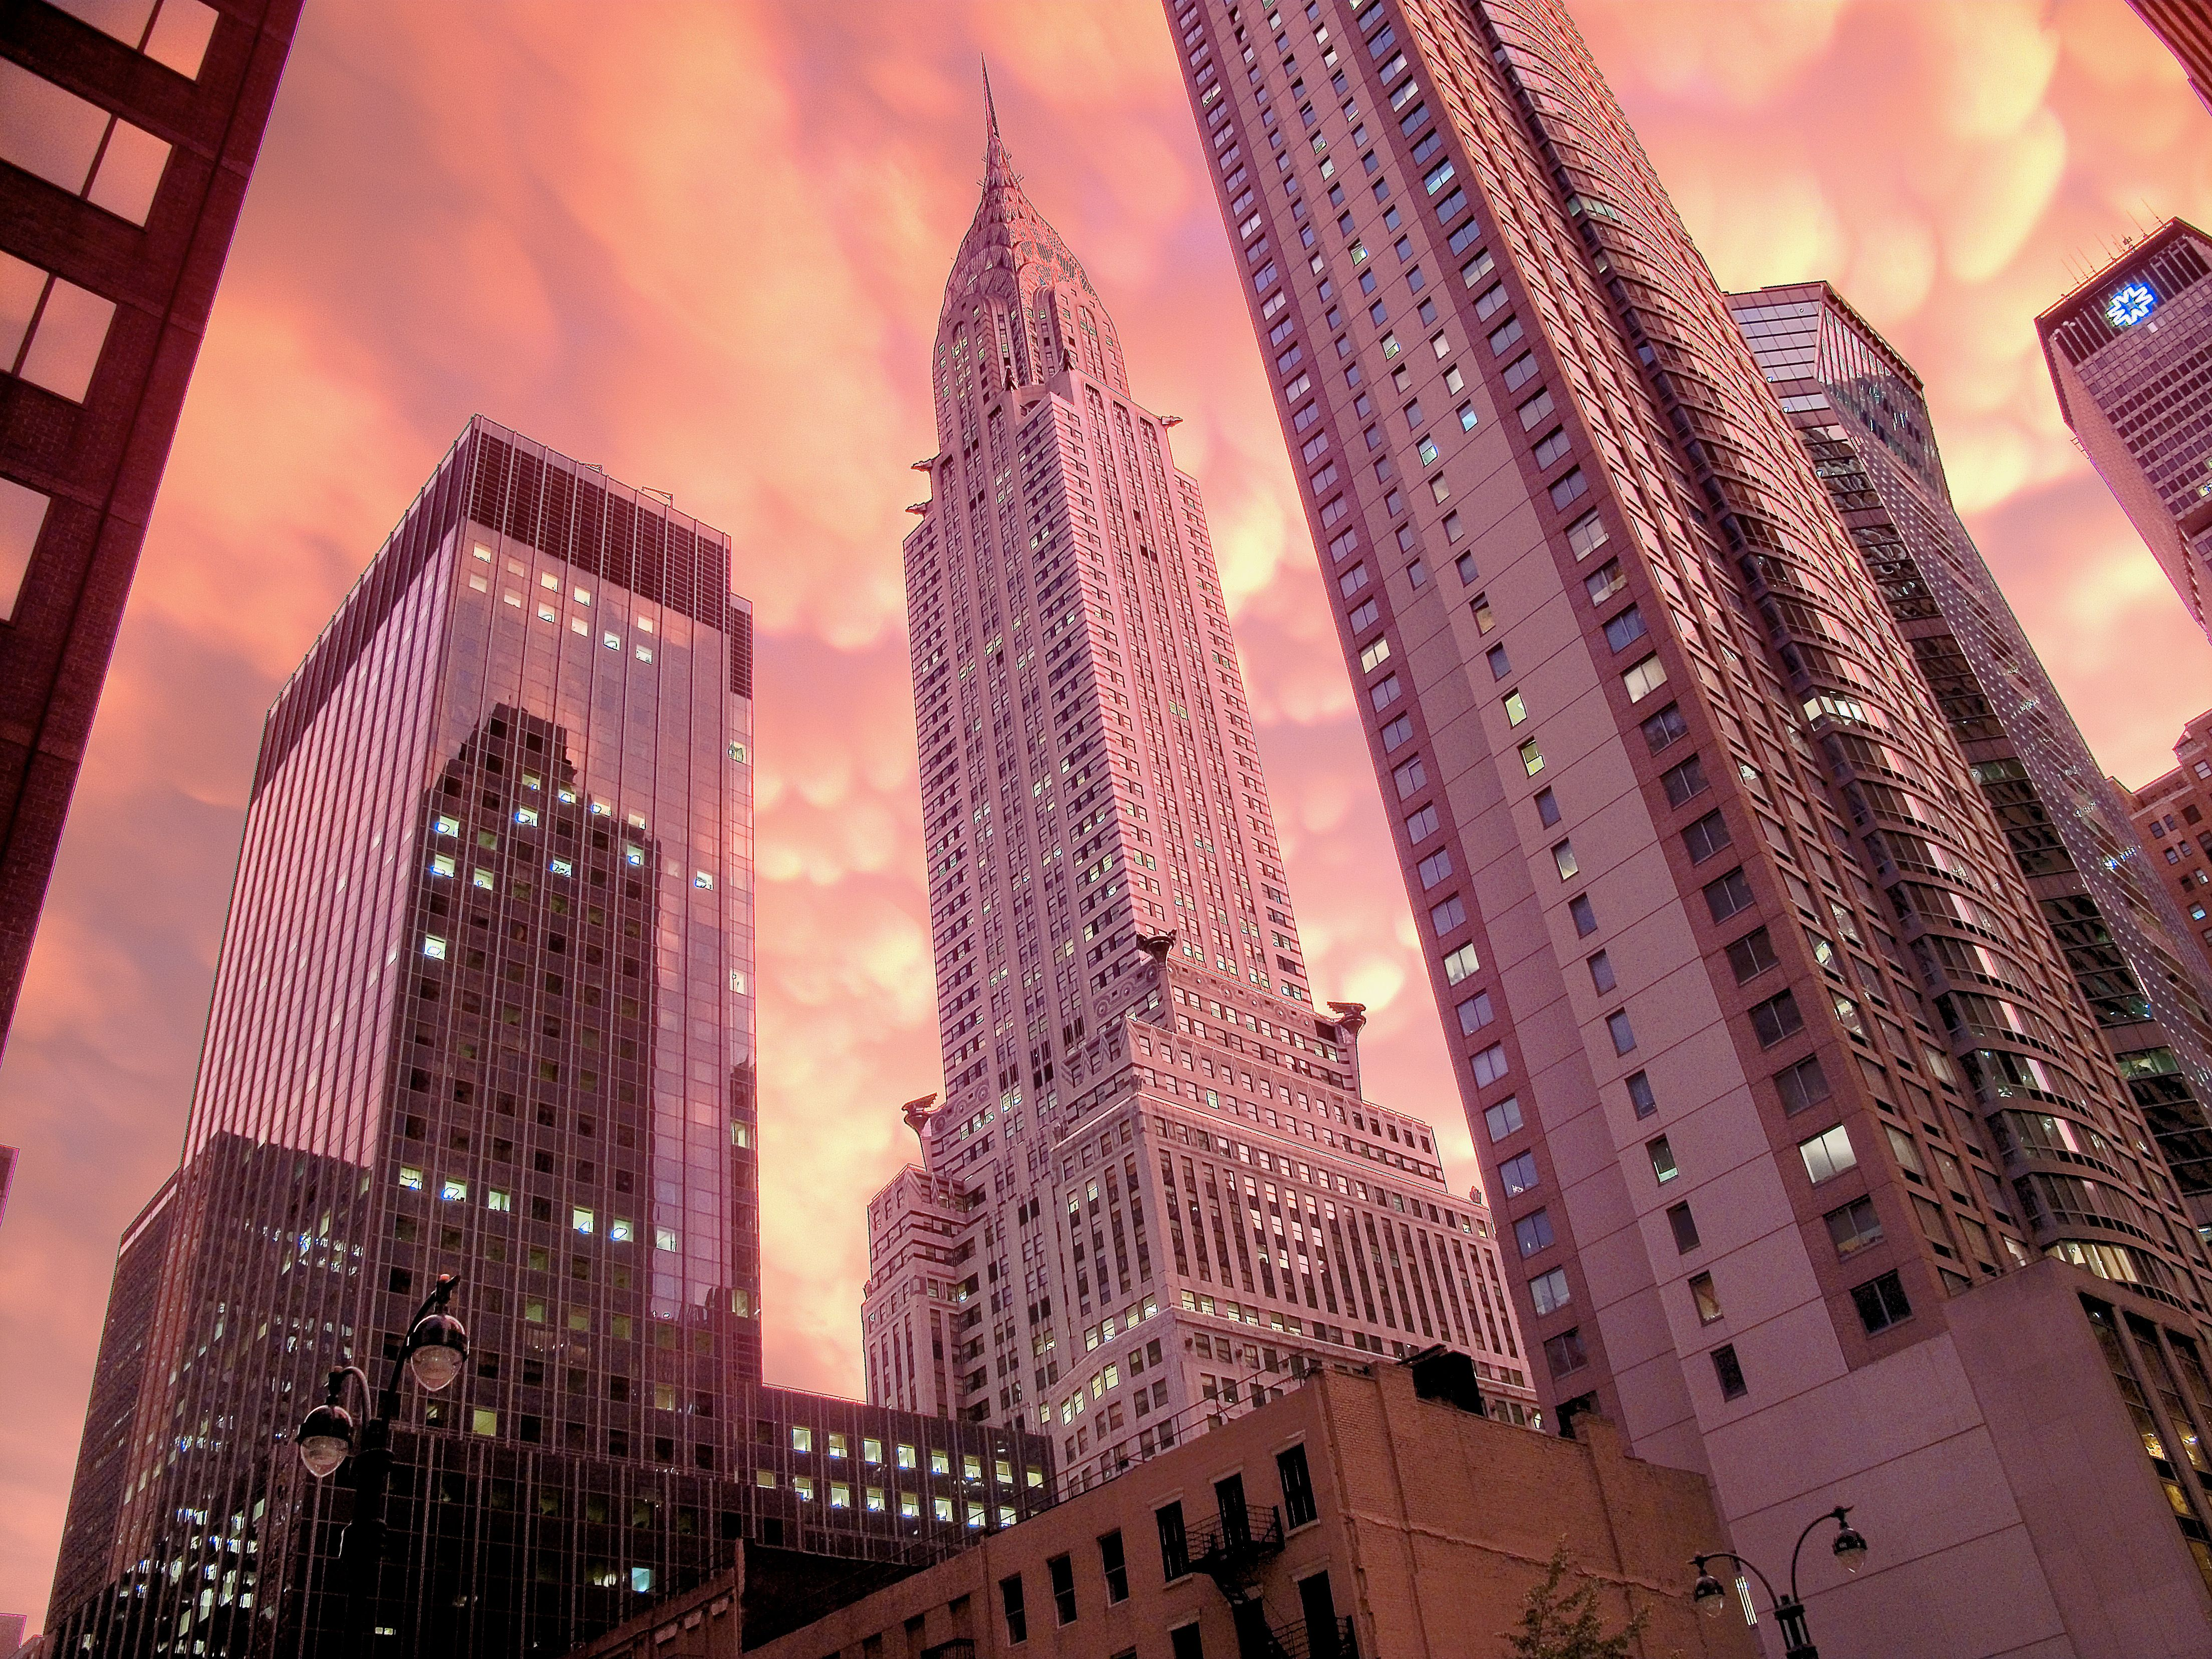 Chrysler building storm sunset 2 in 2020 City aesthetic